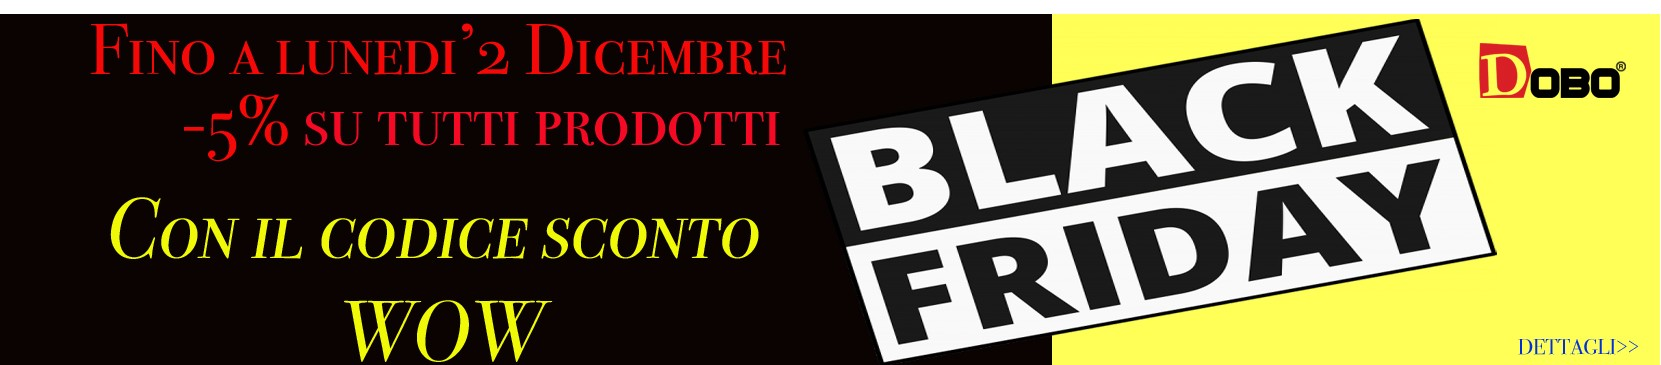 Black Friday 2019 di DOBO.it